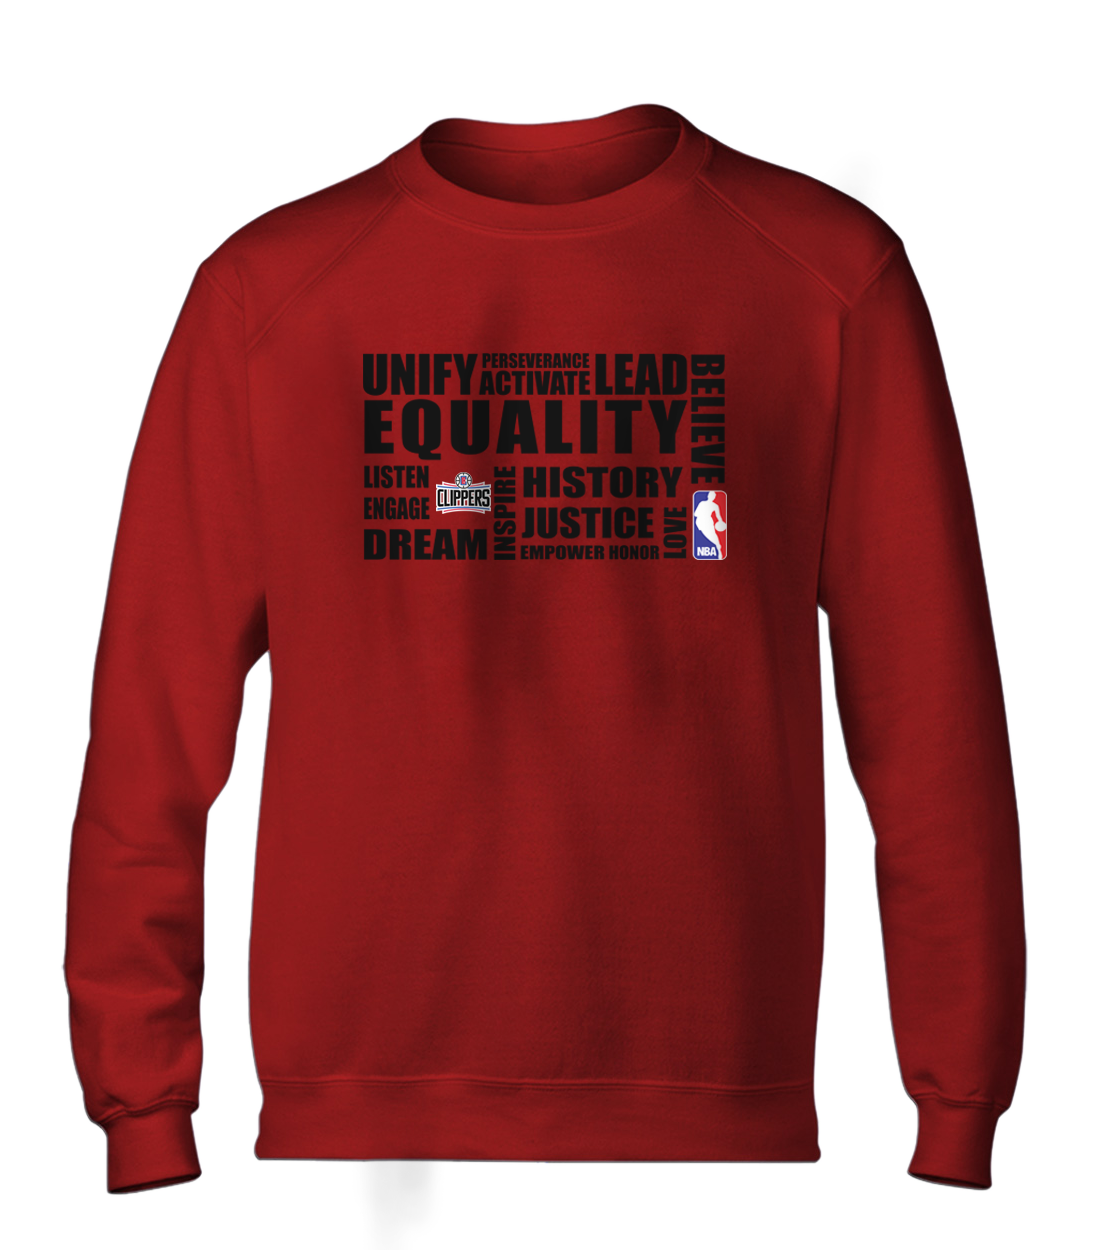 EQUALITY  L.A. Clippers  Basic (BSC-RED-NP-292-NBA-LAC.syh)